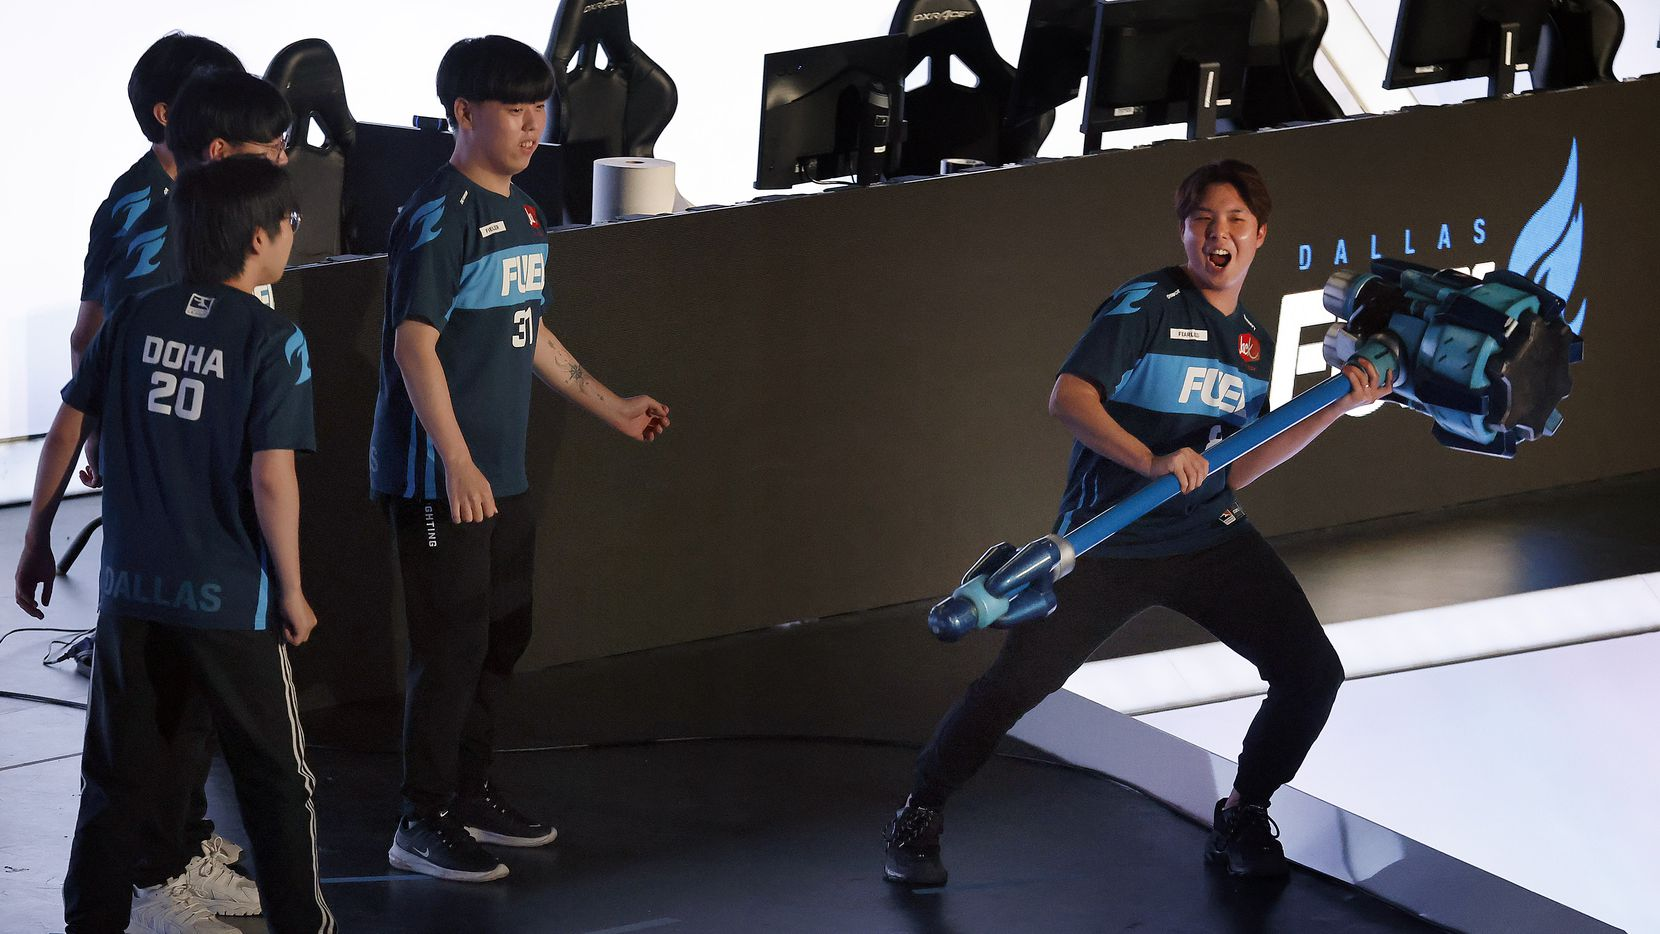 Dallas Fuel player Fearless (right) yells before slamming Reinhardt's hammer, knocking over his teammates during their Overwatch League introductions at Esports Stadium Arlington Friday, July 9, 2021. Dallas Fuel defeated the Houston Outlaws in The Battle for Texas, 3-0. It was the first in-person live competition for fans in over a year. Houston competed from their hometown.